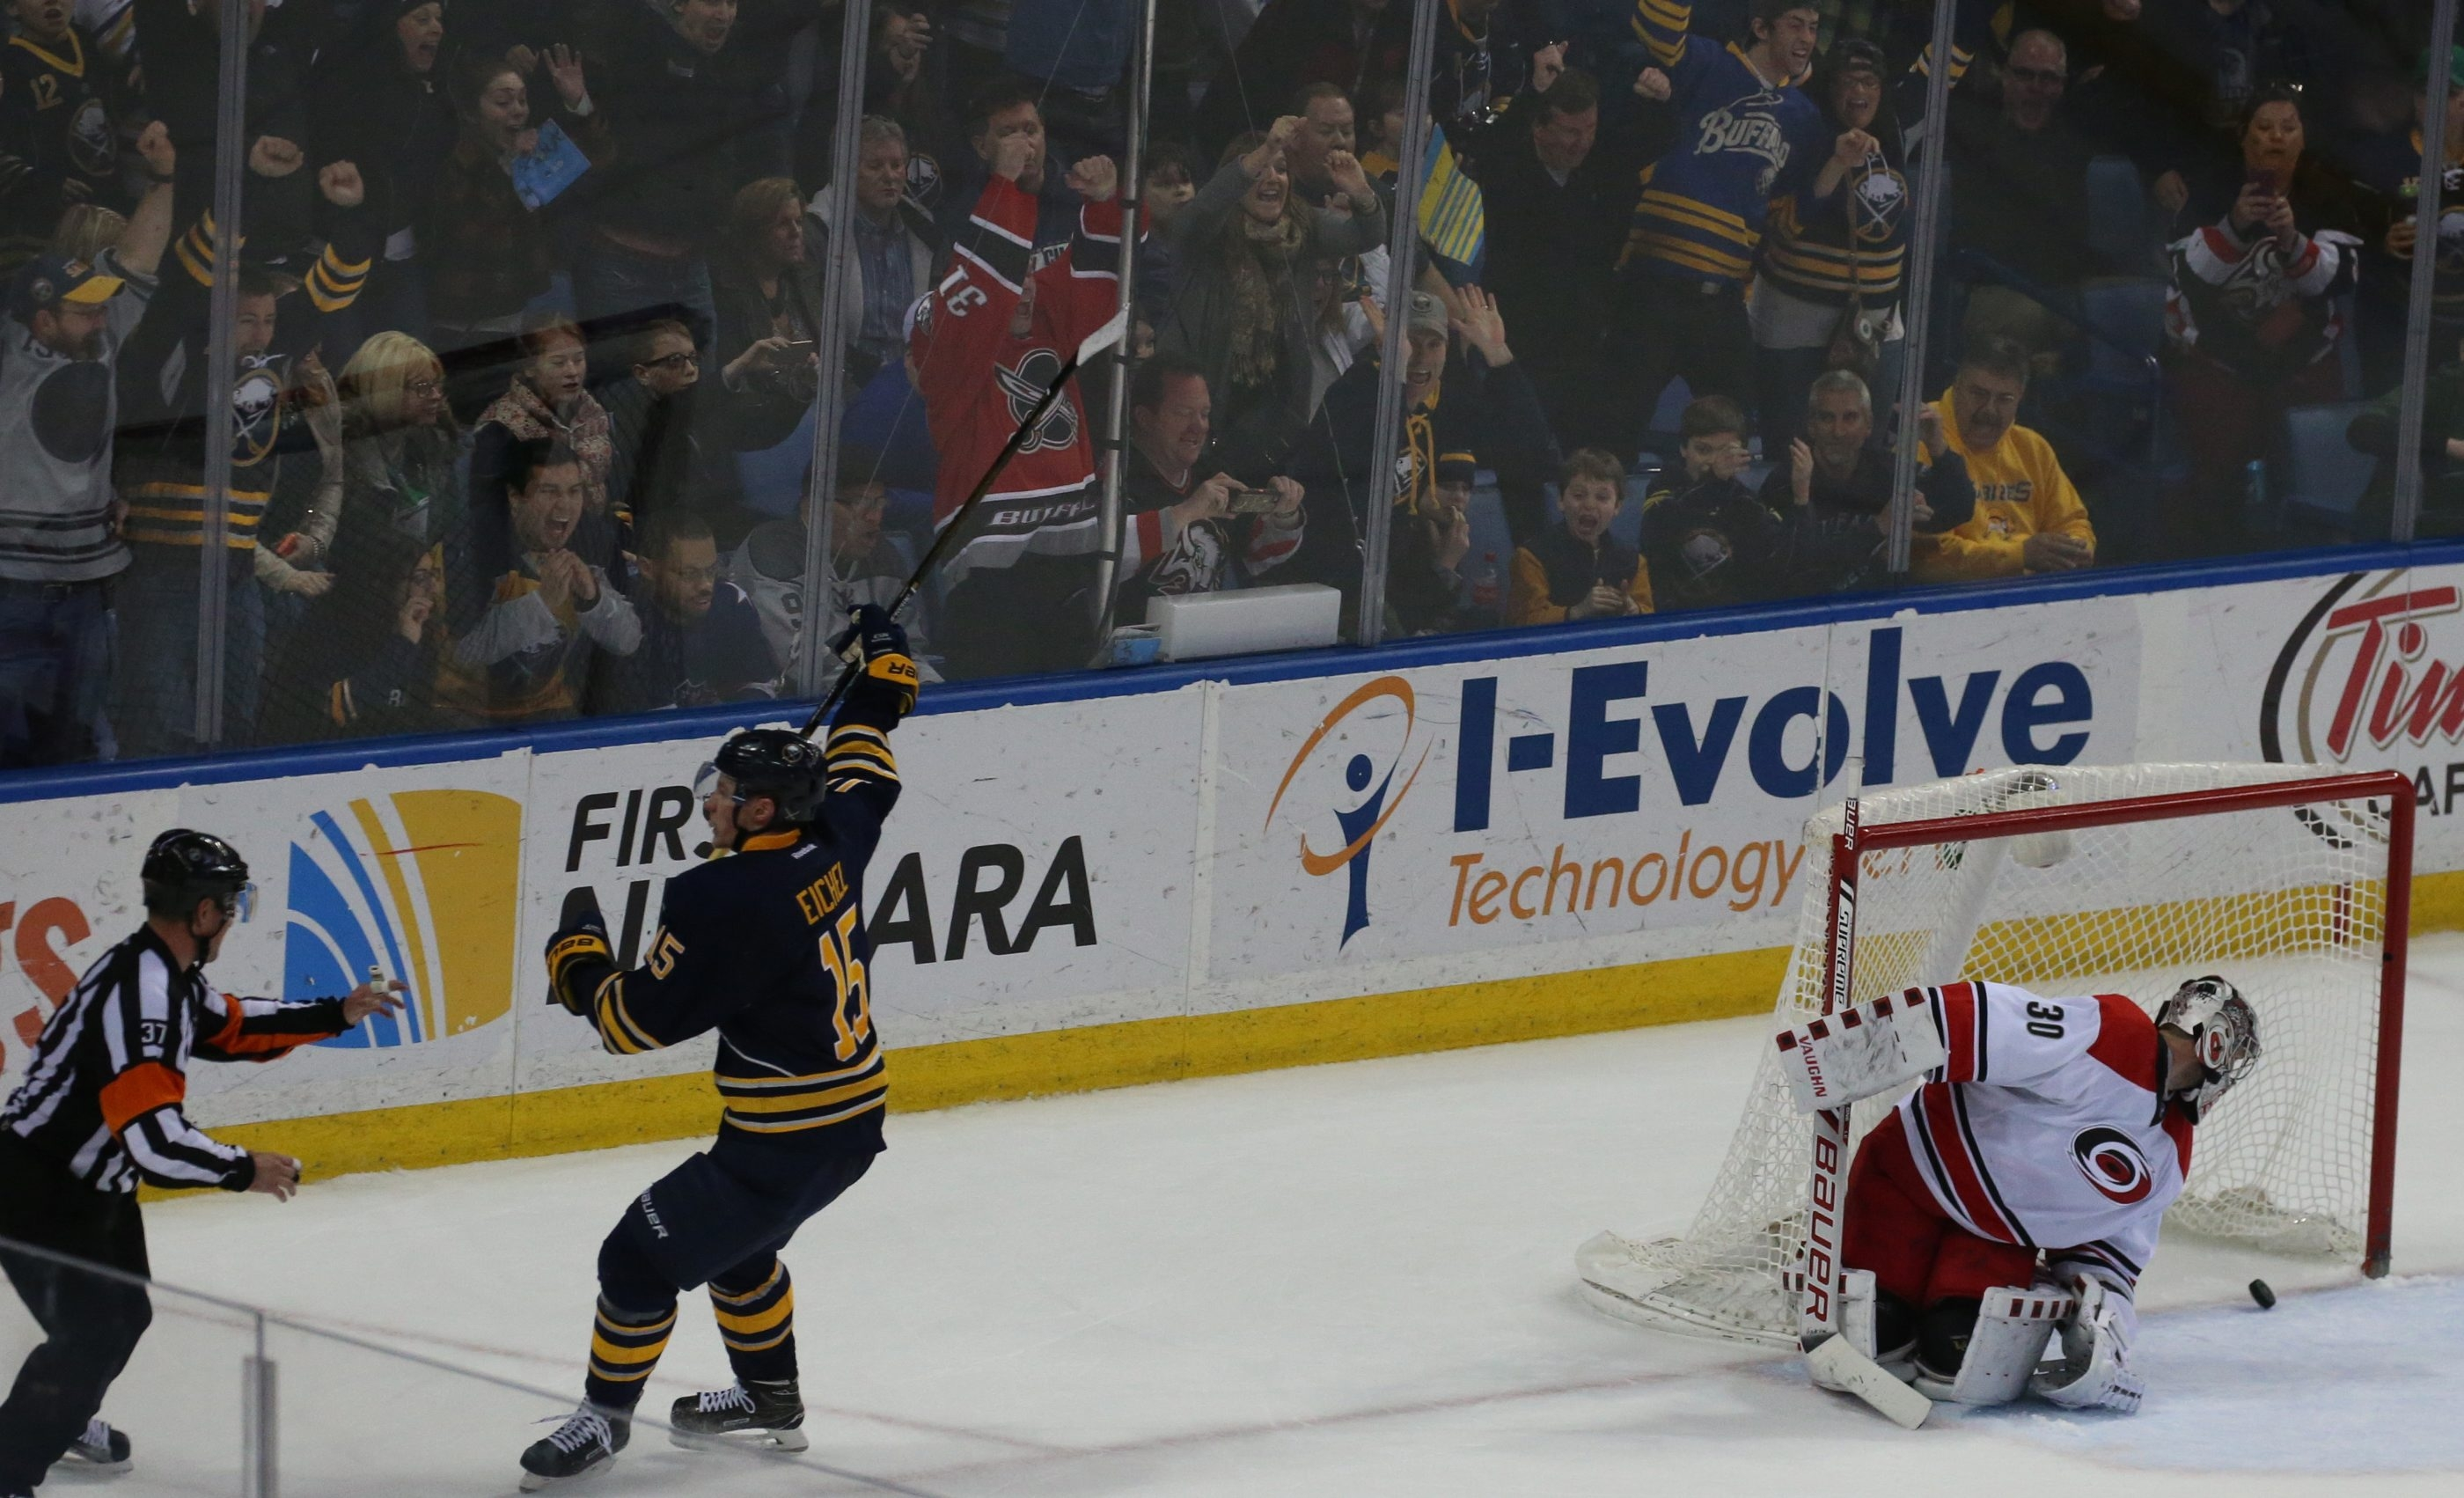 Buffalo's Jack Eichel celebrates as he scores the winning goal on Carolina's Cam Ward in overtime at First Niagara Center.